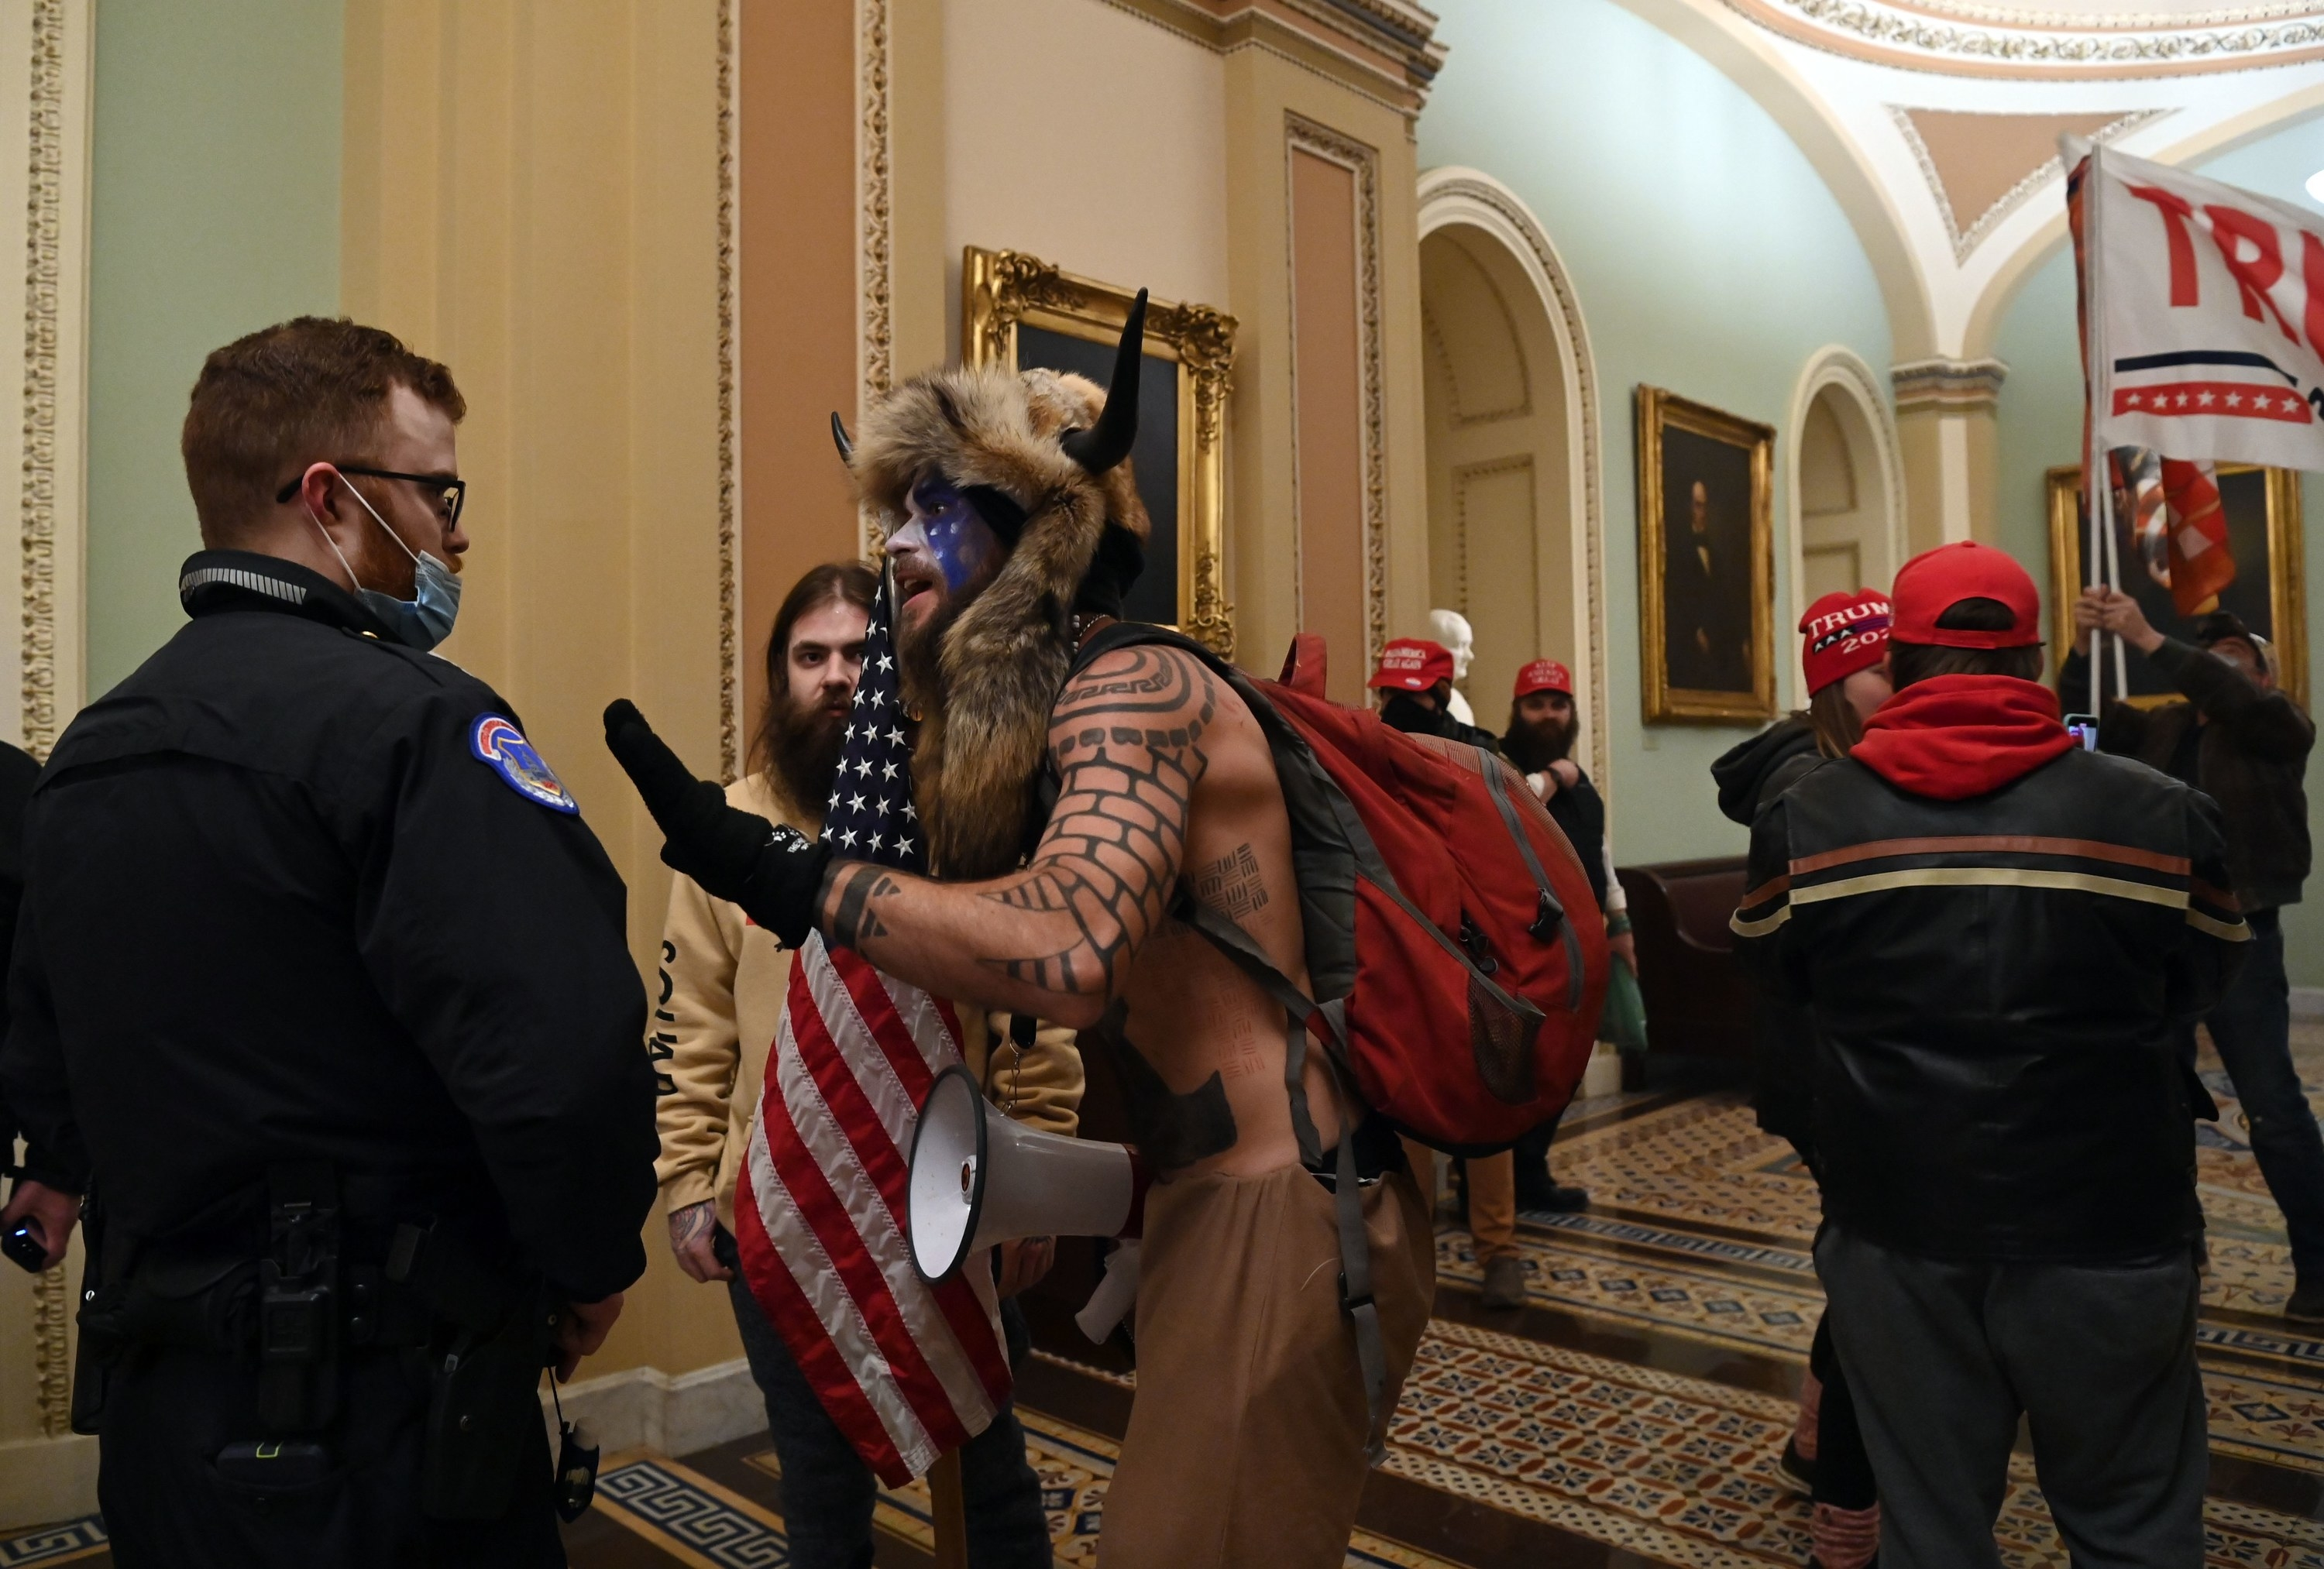 Police officers talk to Trump supporters, including a shirtless man with a backpack who wears face paint and an animal hide with horns over his head